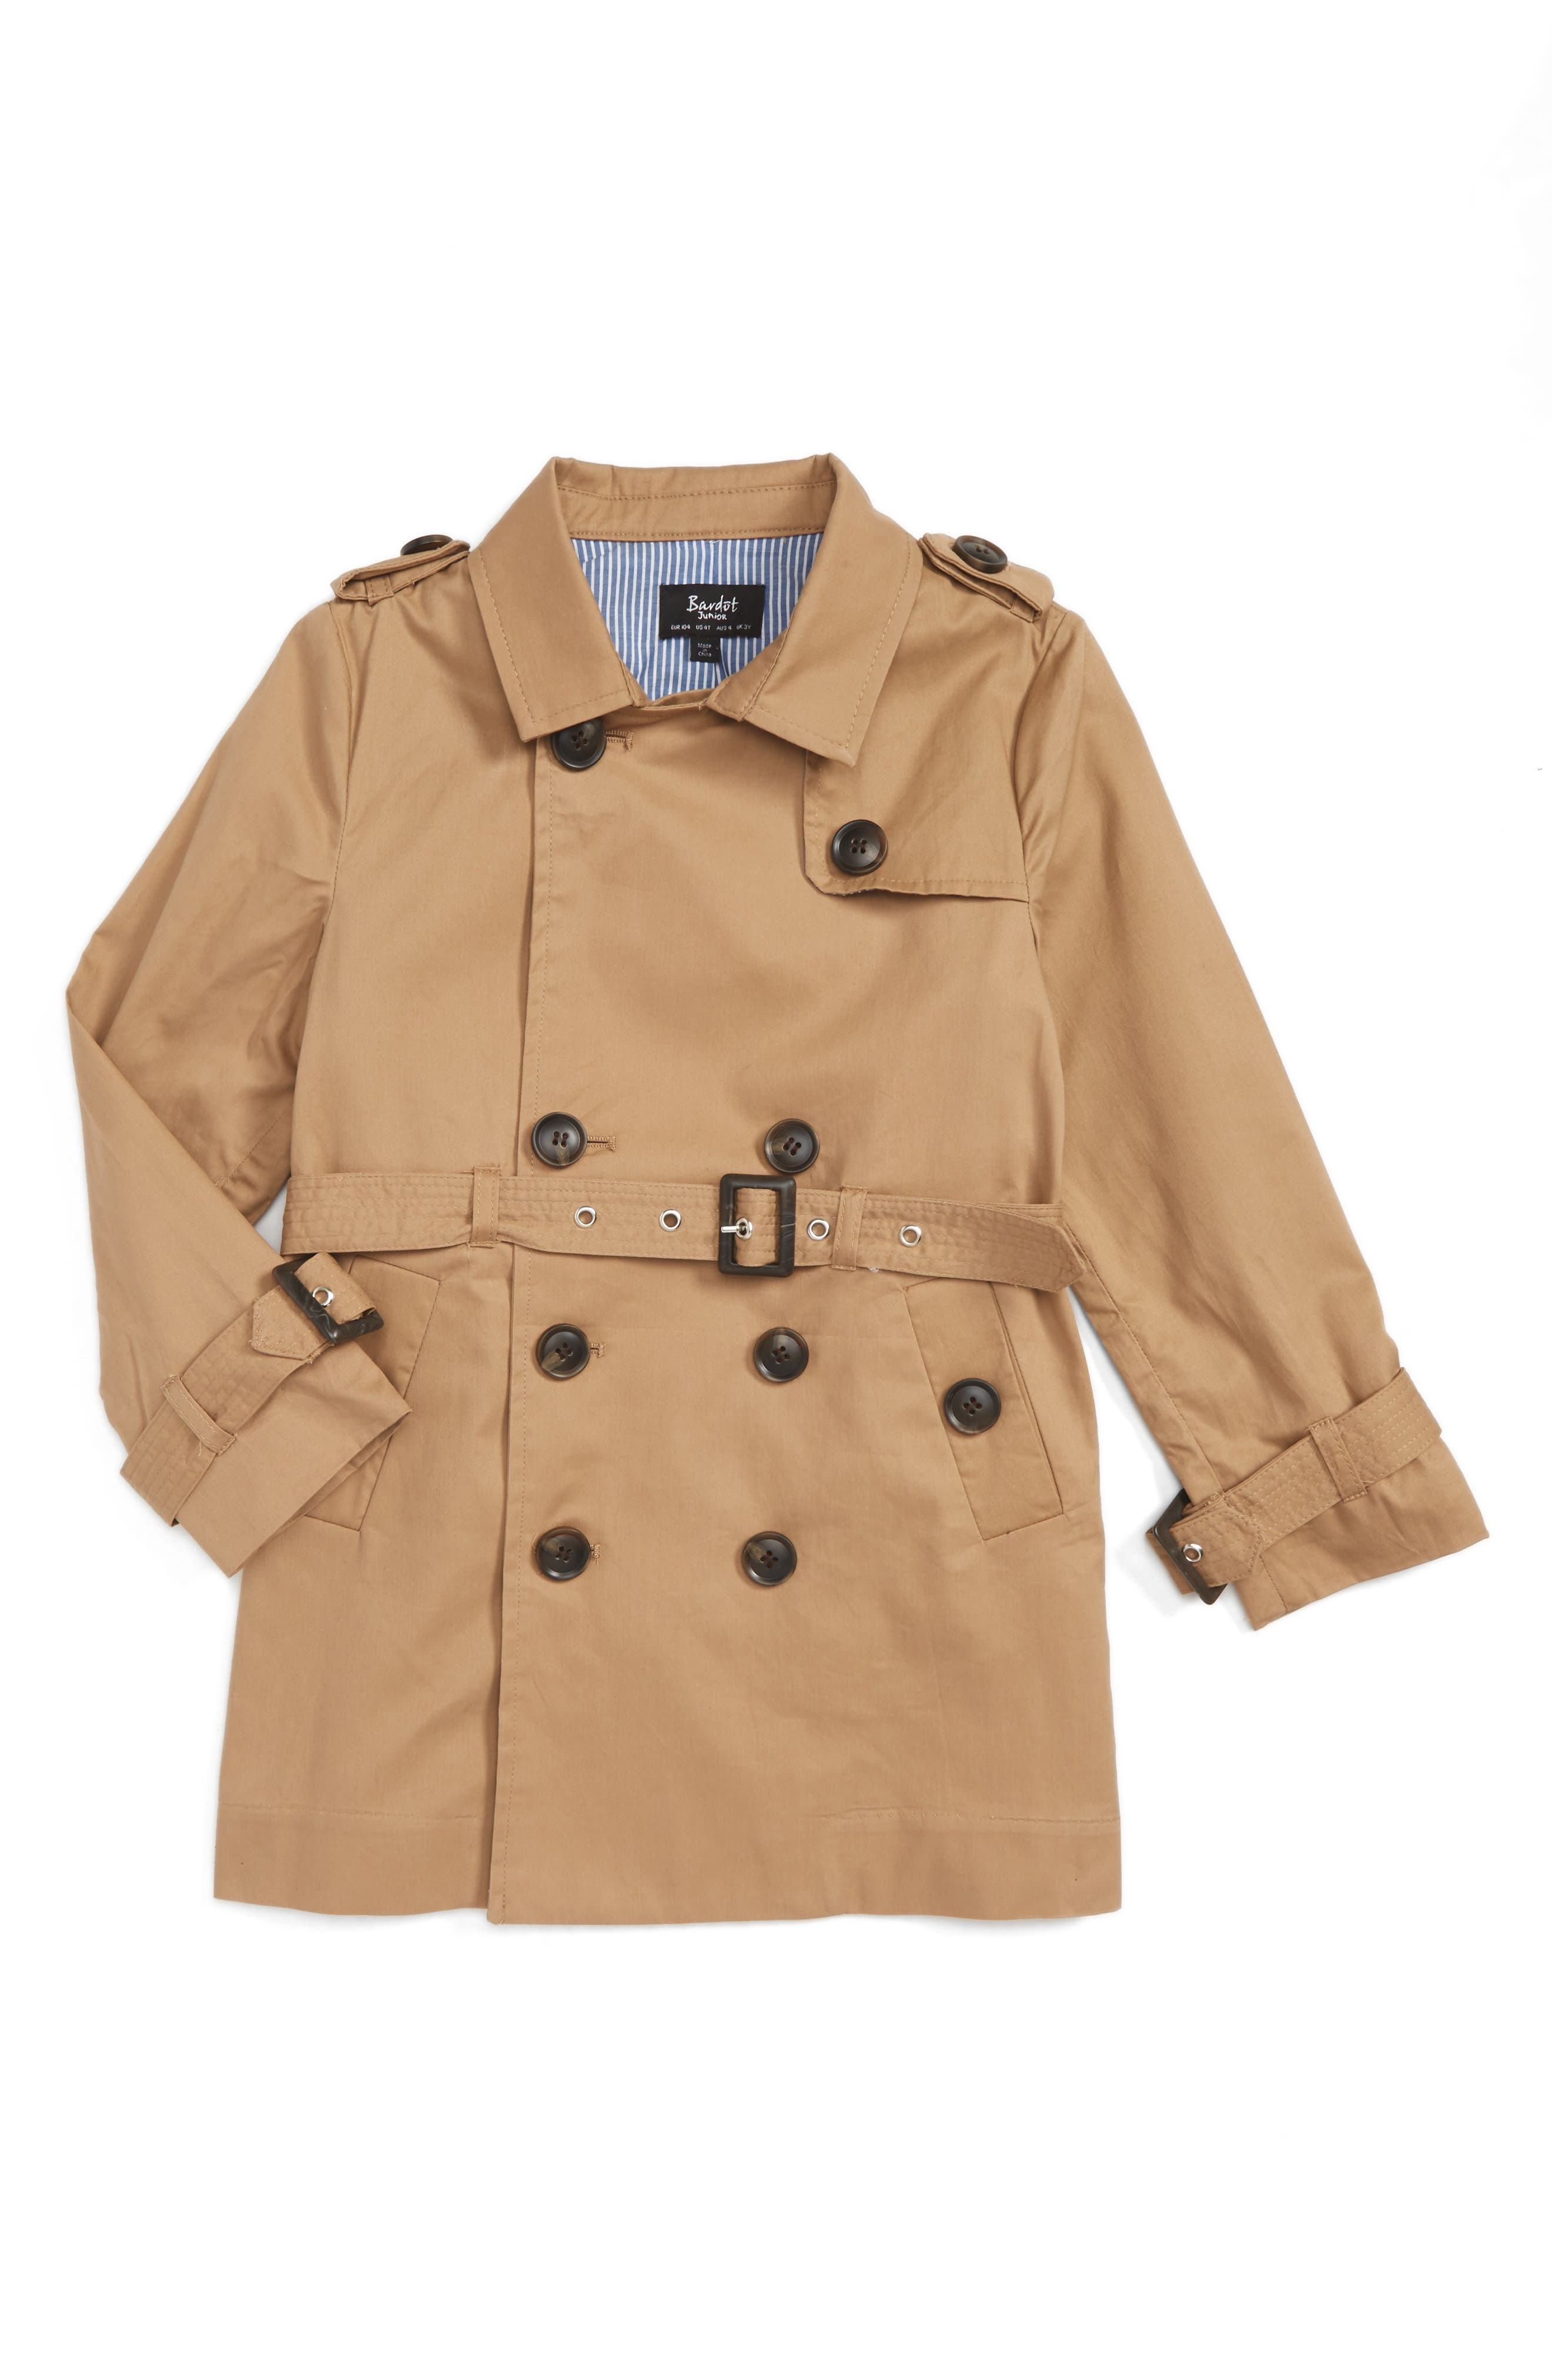 Bardot Junior Ryder Trench Coat (Toddler Boys & Little Boys)